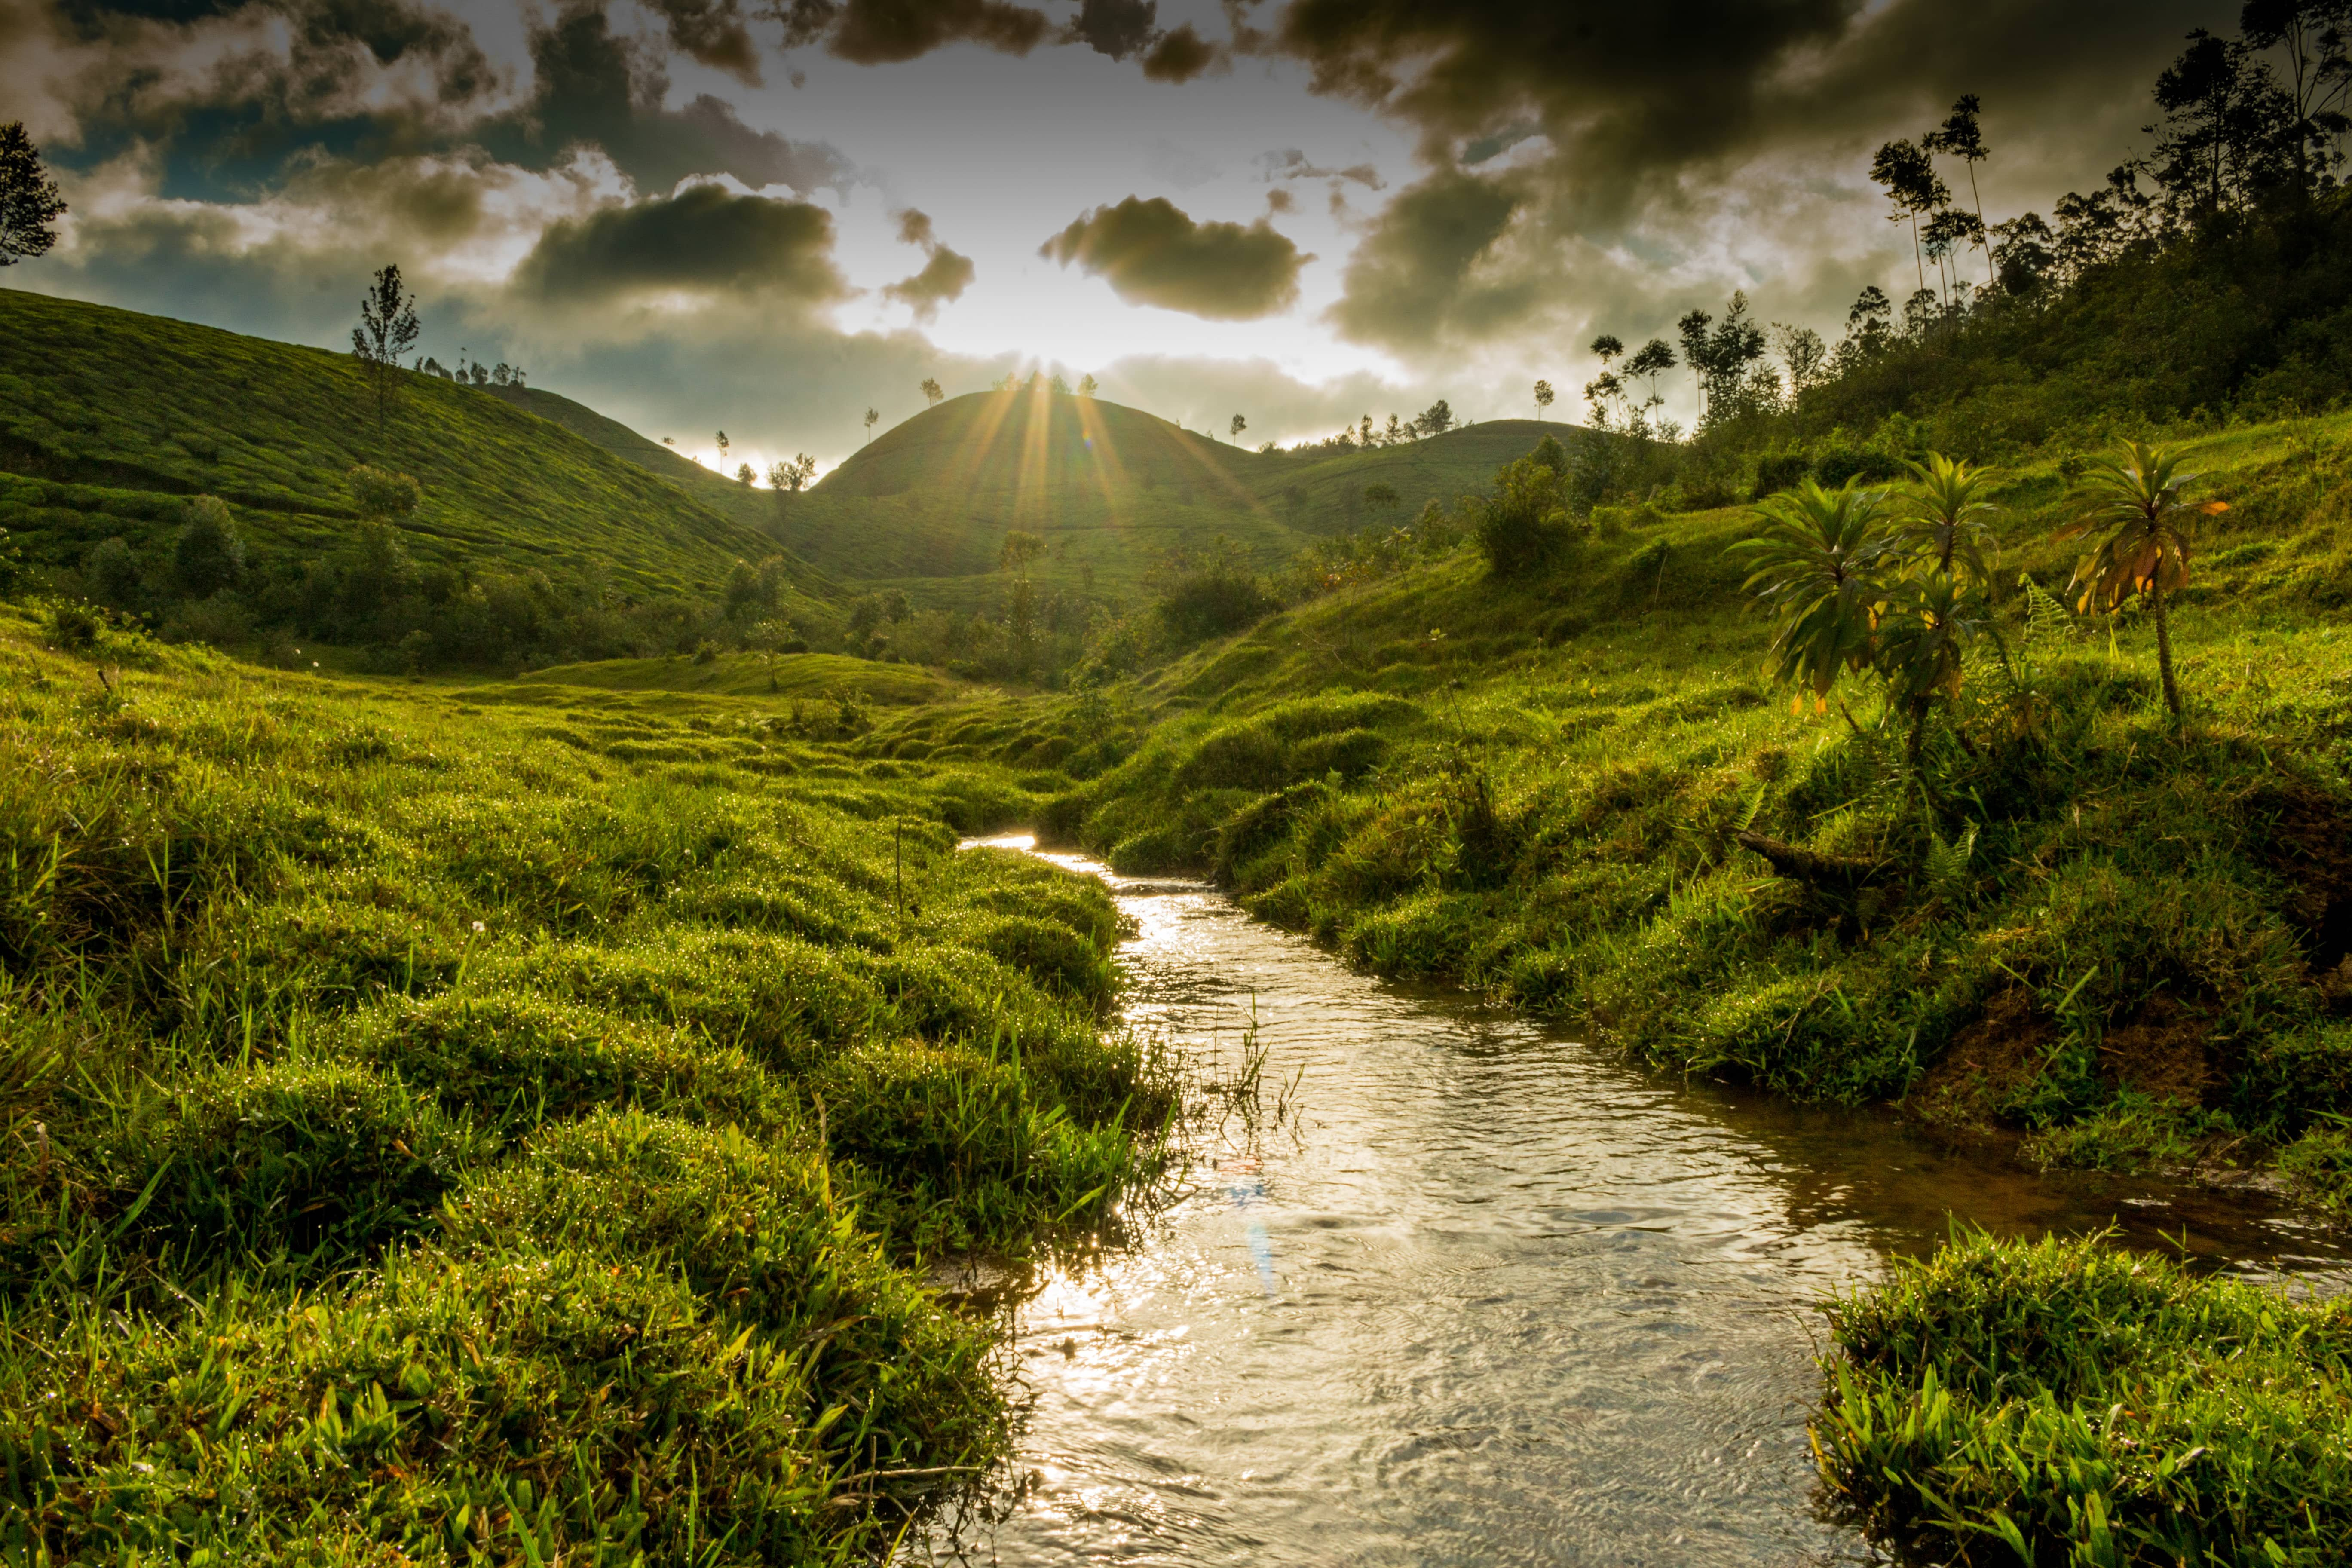 If You're A Landscape Photographer Then Here's Why The Serene Town Of Munnar Should Be Your Next Muse